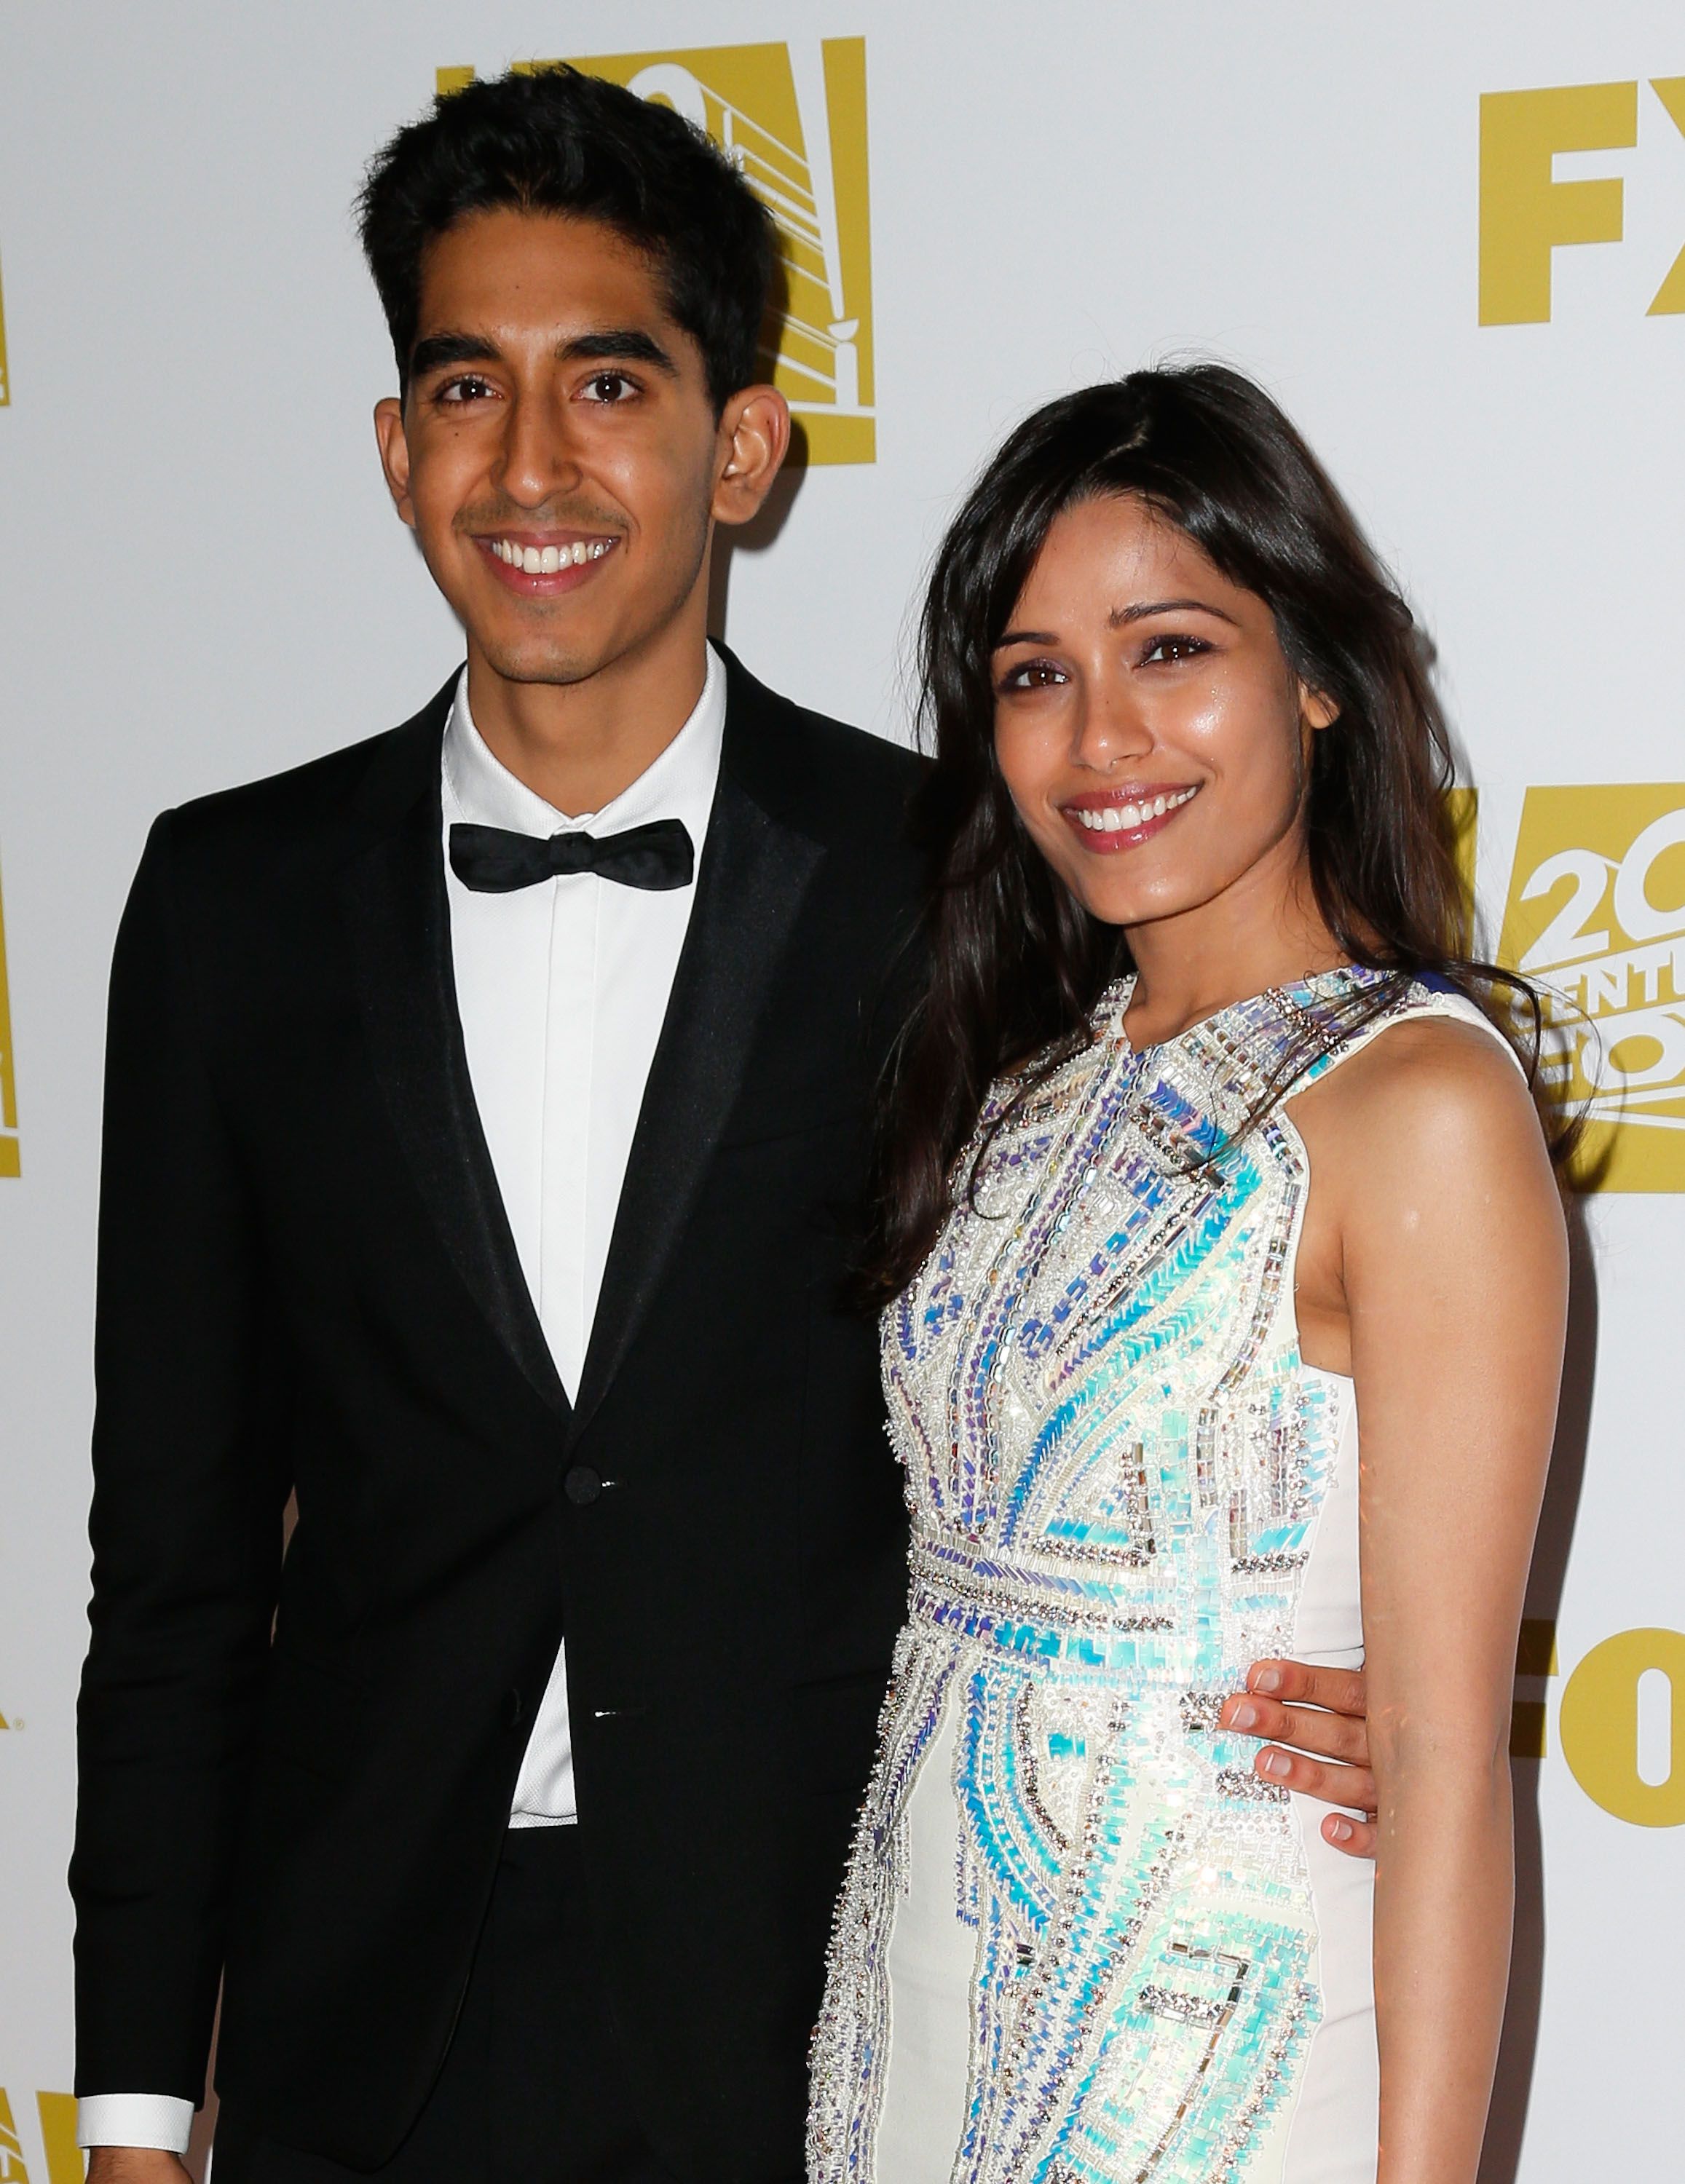 Dev Patel and Freida Pinto smiled for cameras at the Fox Searchlight after party.